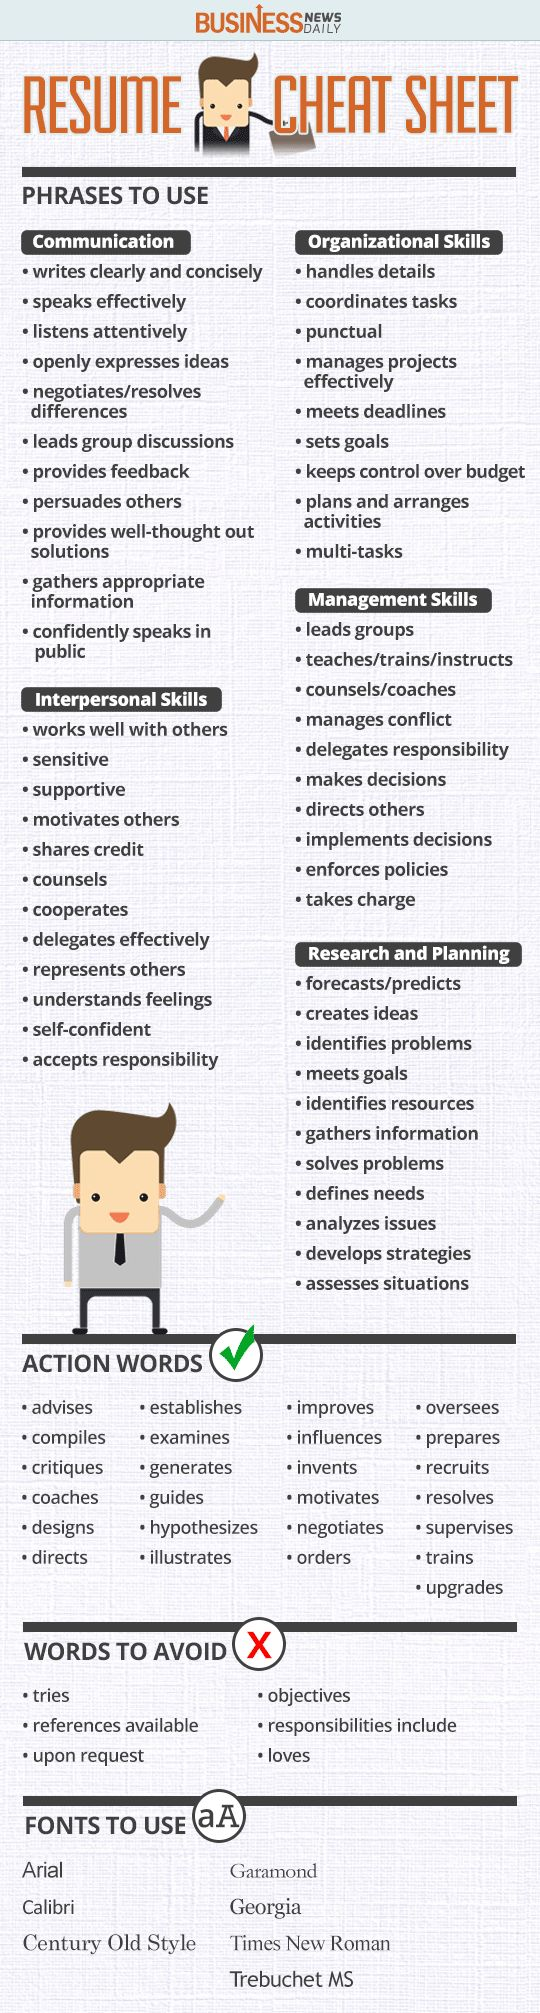 Opposenewapstandardsus  Unusual  Ideas About Resume On Pinterest  Cv Format Resume  With Interesting Resume Cheat Sheet Infographic Andrews Almost Done With A Complete Unit On Employment Which With Enchanting Management Resume Samples Also Indeed Search Resumes In Addition Sales Associate Resume Sample And Web Design Resume As Well As Resume Profile Summary Additionally Expected Graduation Date Resume From Pinterestcom With Opposenewapstandardsus  Interesting  Ideas About Resume On Pinterest  Cv Format Resume  With Enchanting Resume Cheat Sheet Infographic Andrews Almost Done With A Complete Unit On Employment Which And Unusual Management Resume Samples Also Indeed Search Resumes In Addition Sales Associate Resume Sample From Pinterestcom